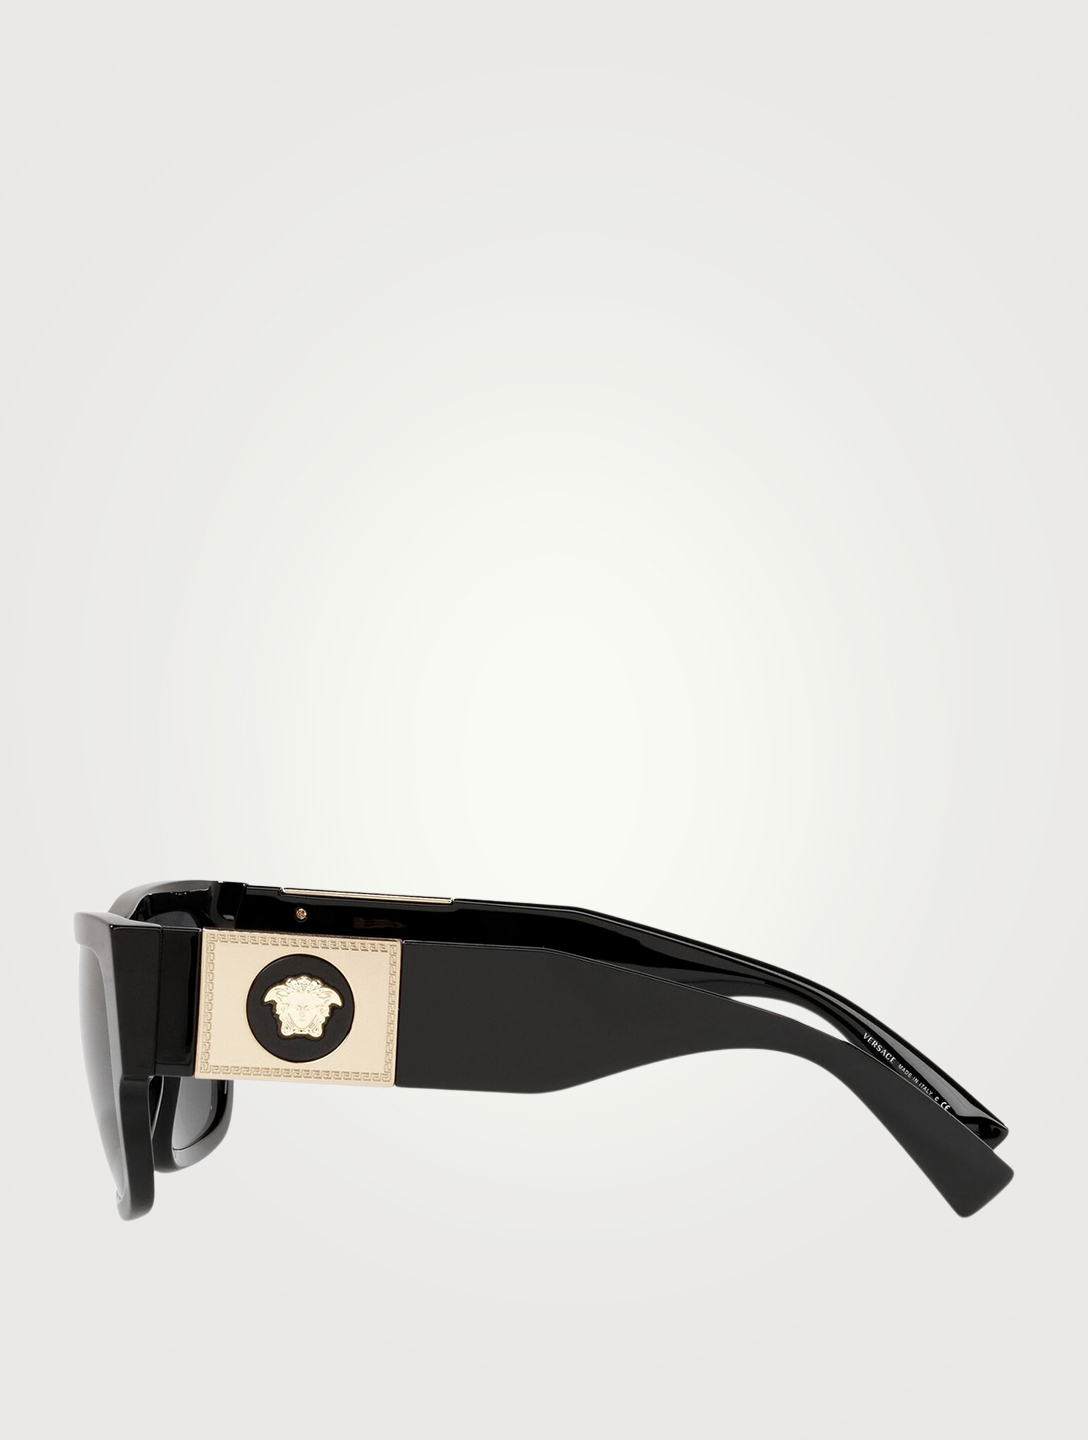 VERSACE Rectangular Sunglasses Men's Black